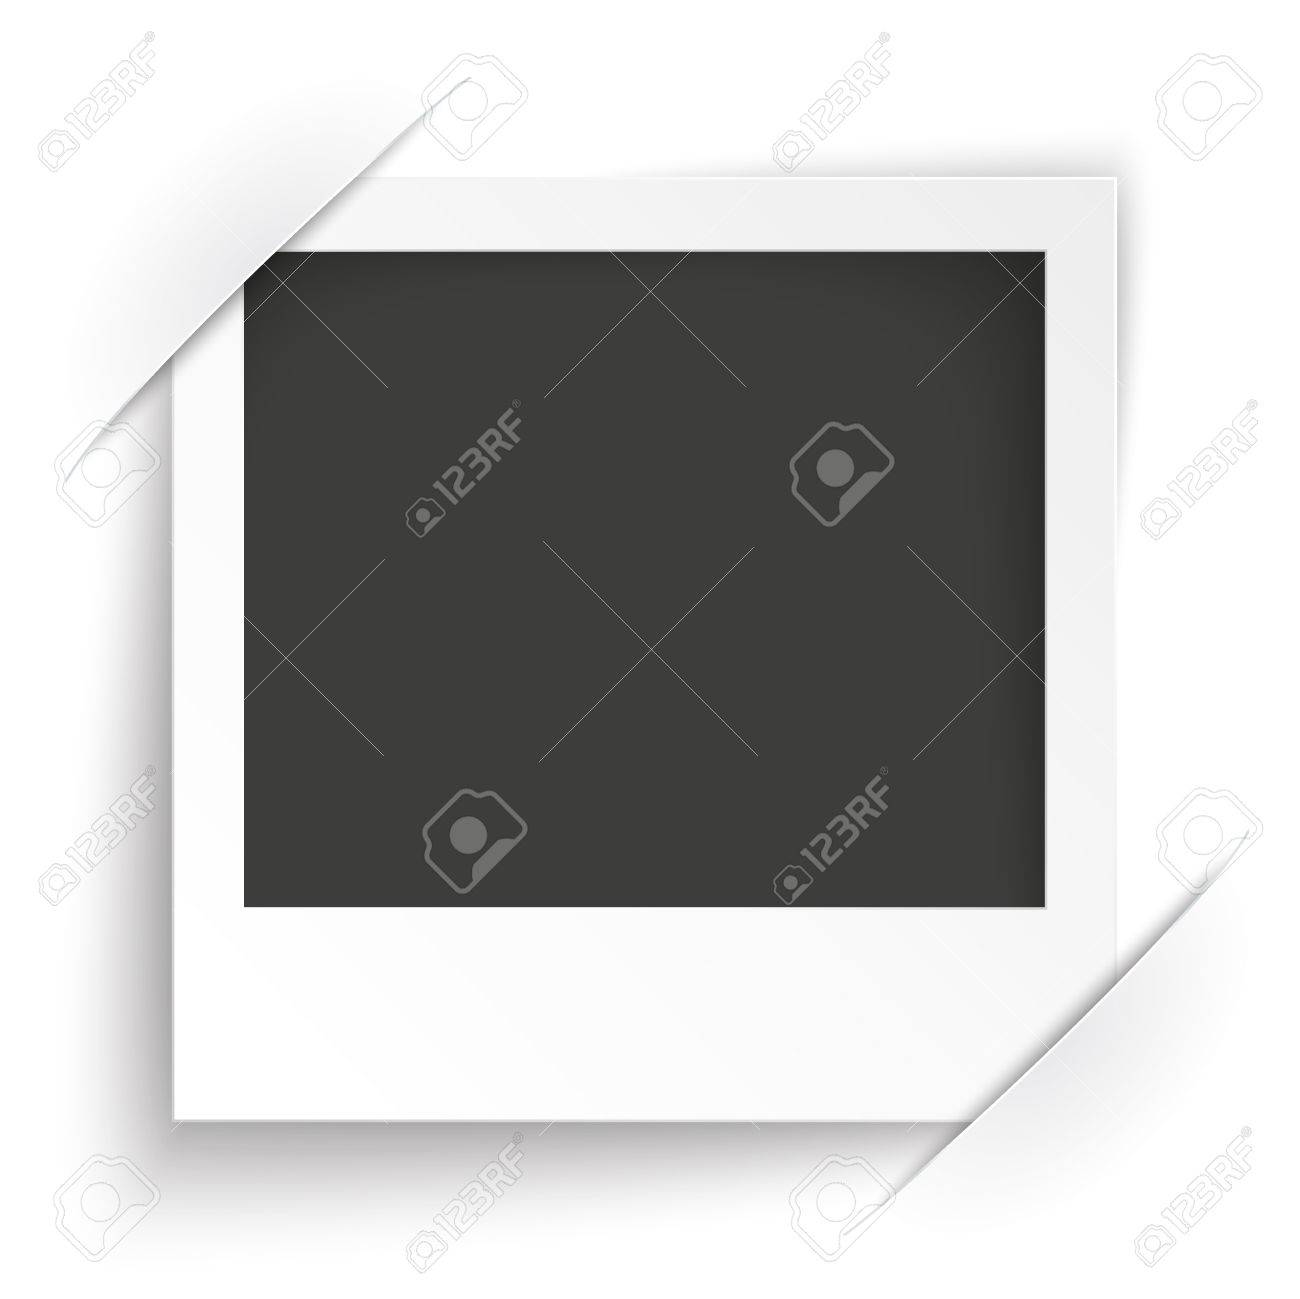 convert instant photo frame on the white background eps 10 vector file stock vector